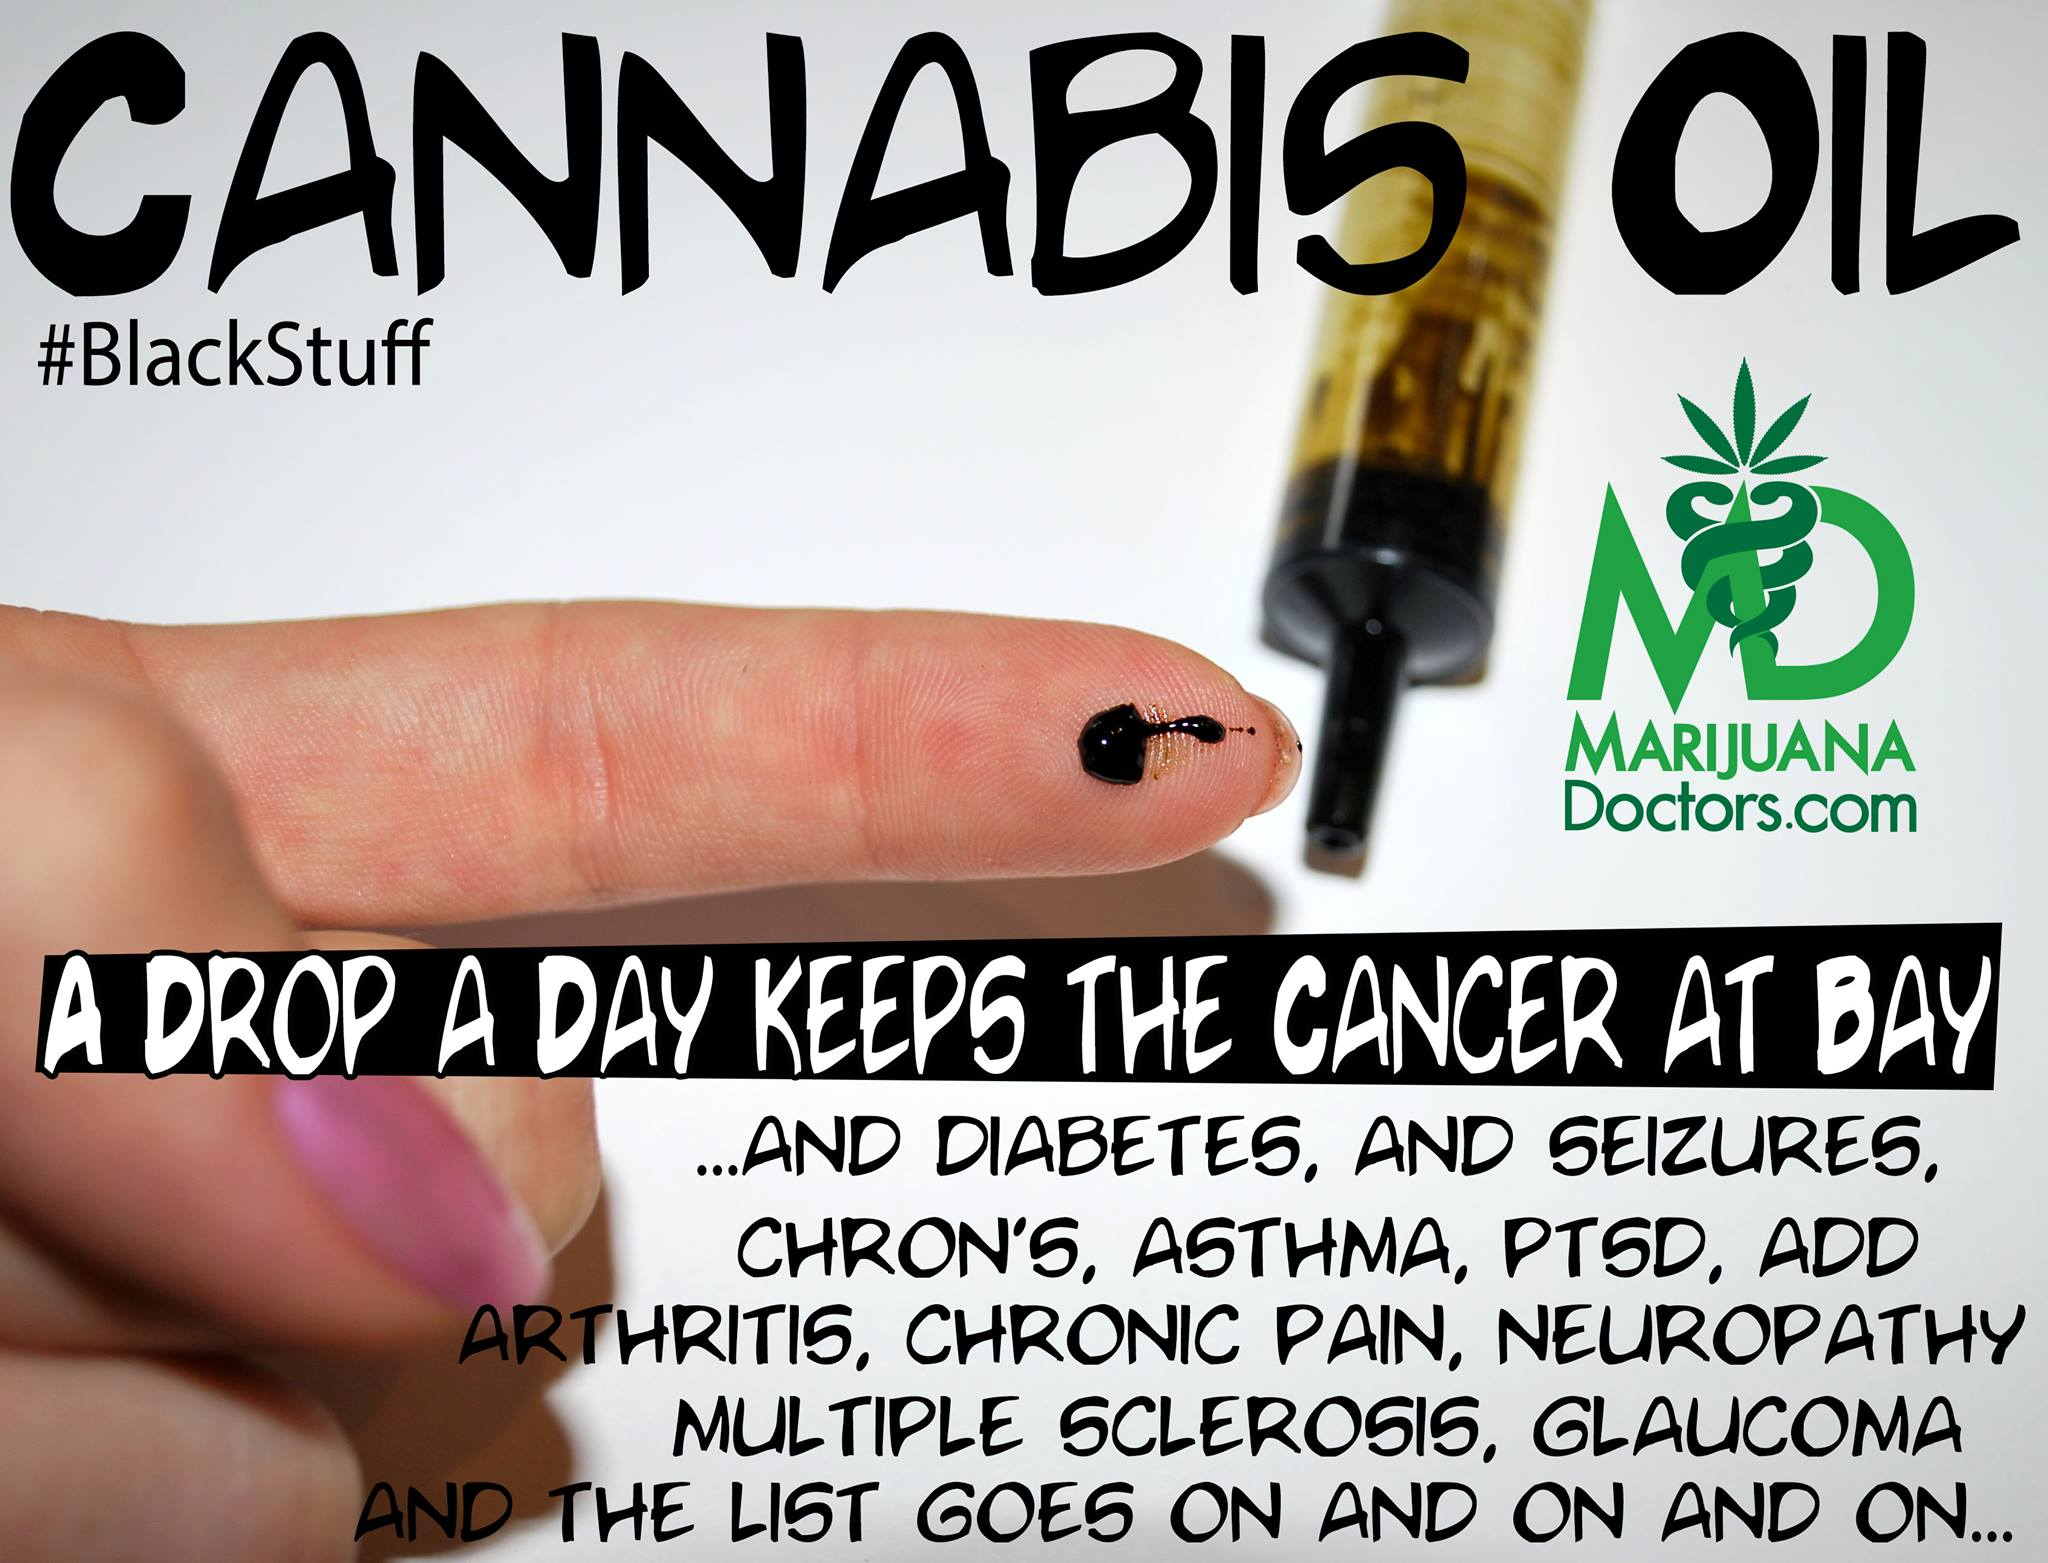 http://stigdragholm.files.wordpress.com/2013/08/cannabis-oil.jpg